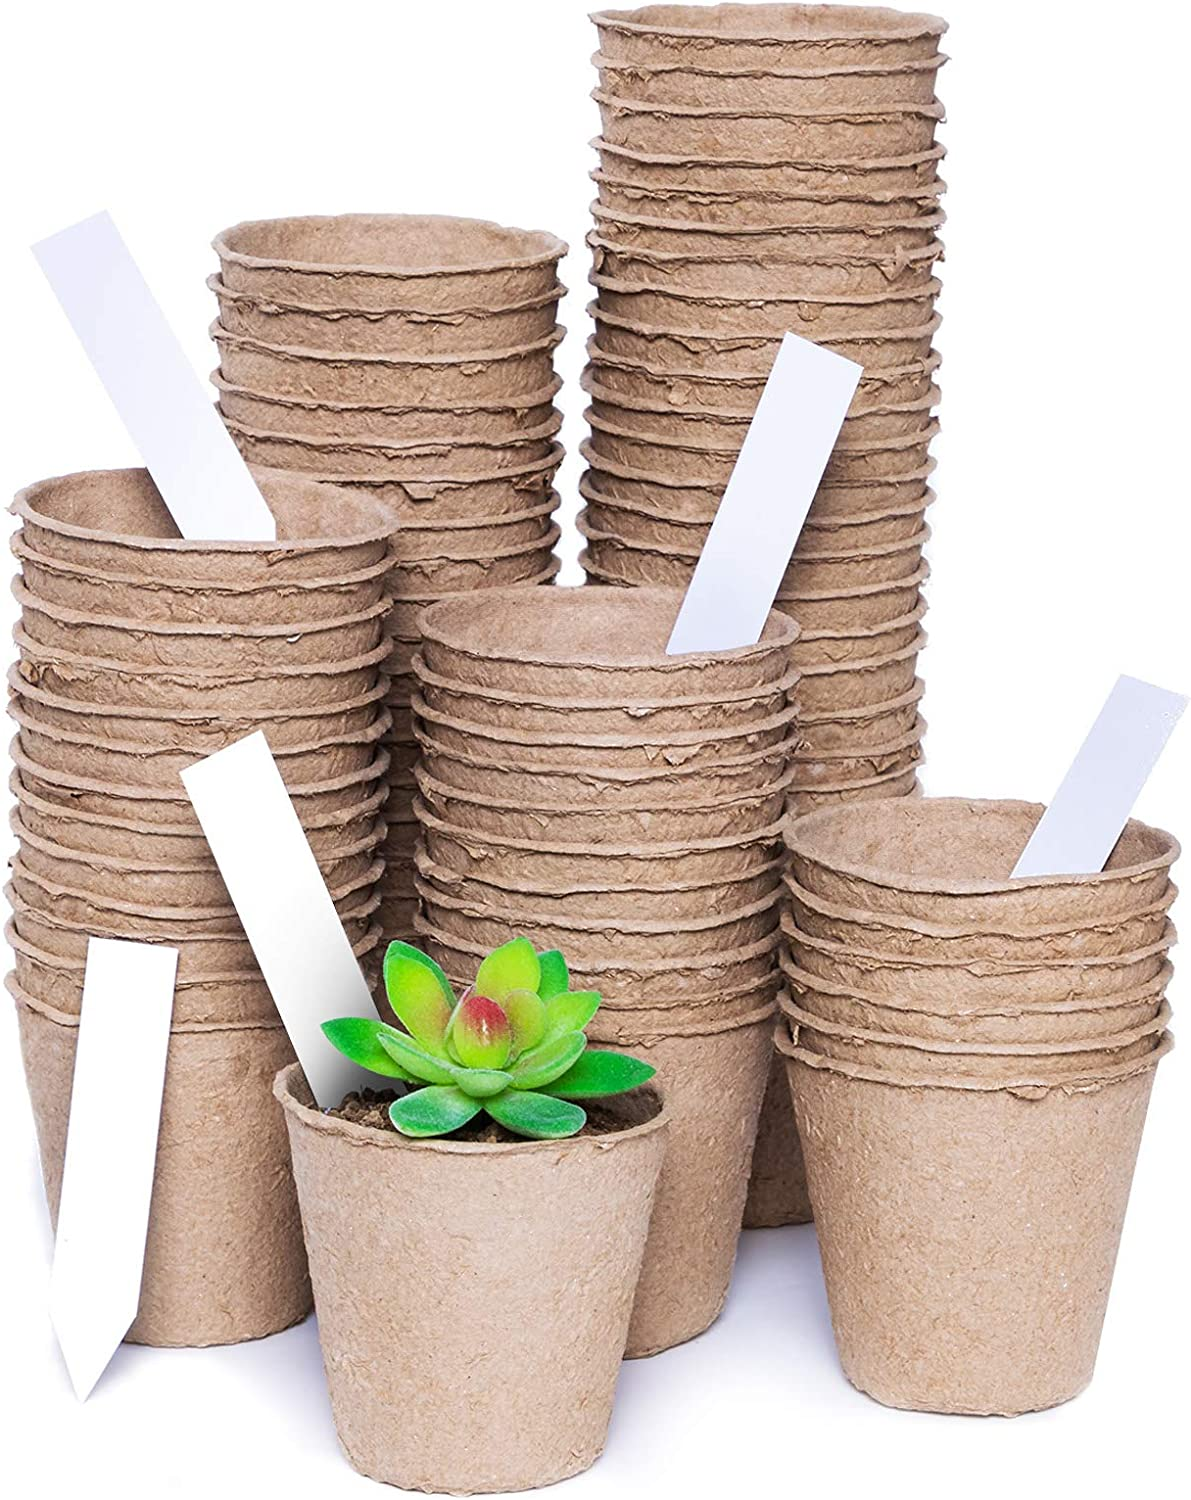 110 Packs 3.2 Inch Peat Pots Plant Starters for Seedling with 11